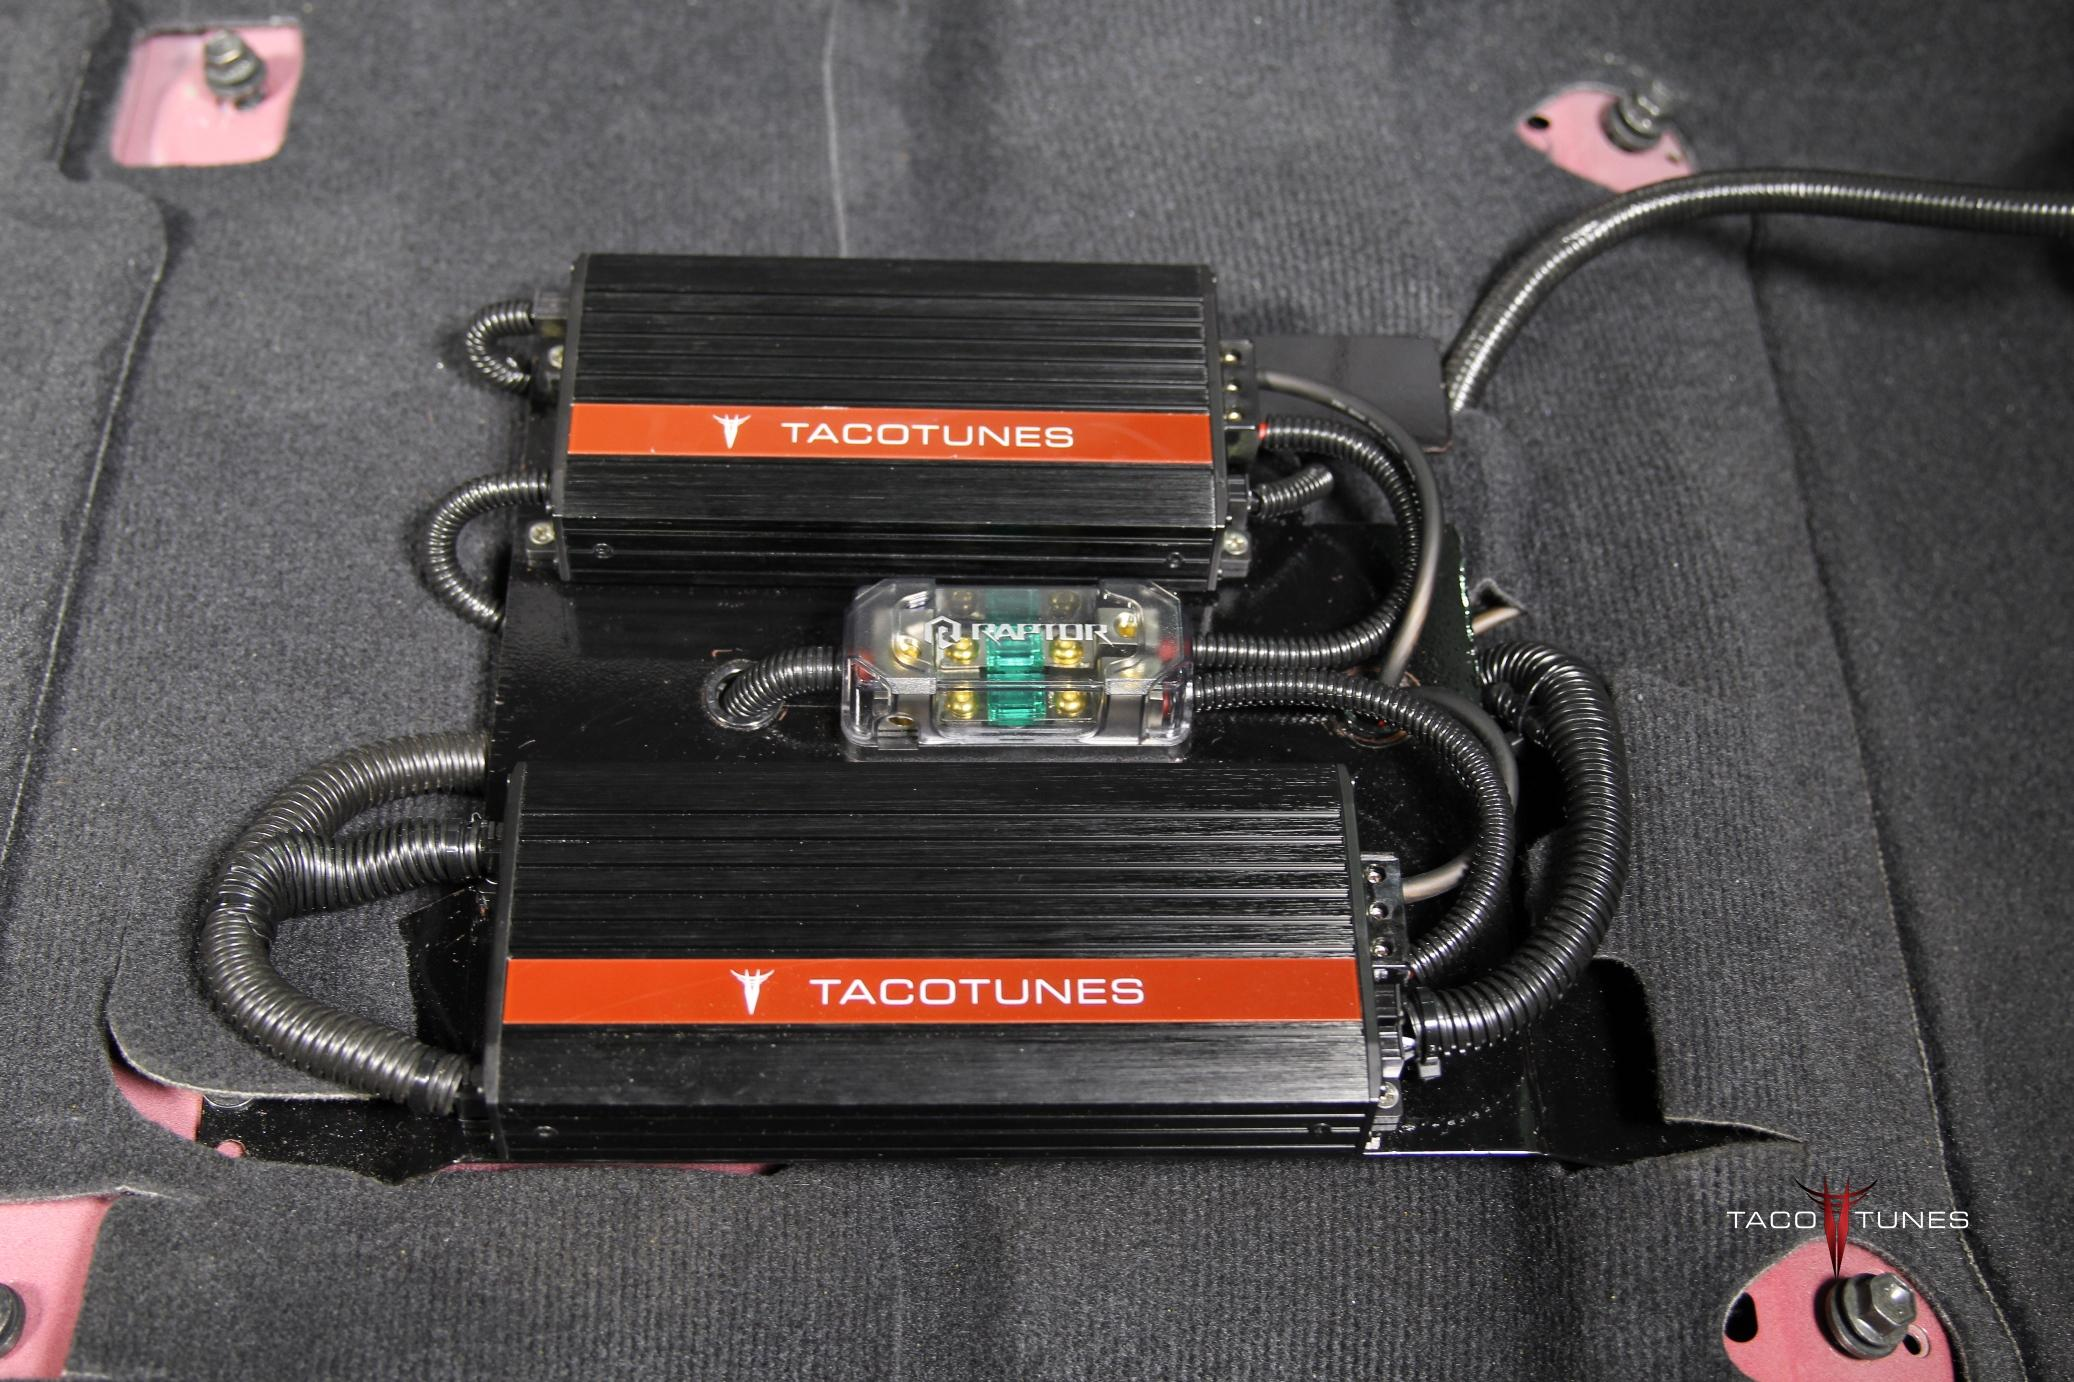 Toyota Camry Plug And Play Stereo Amp Subwoofer Amplifiers Taco Tunes Toyota Audio Solutions